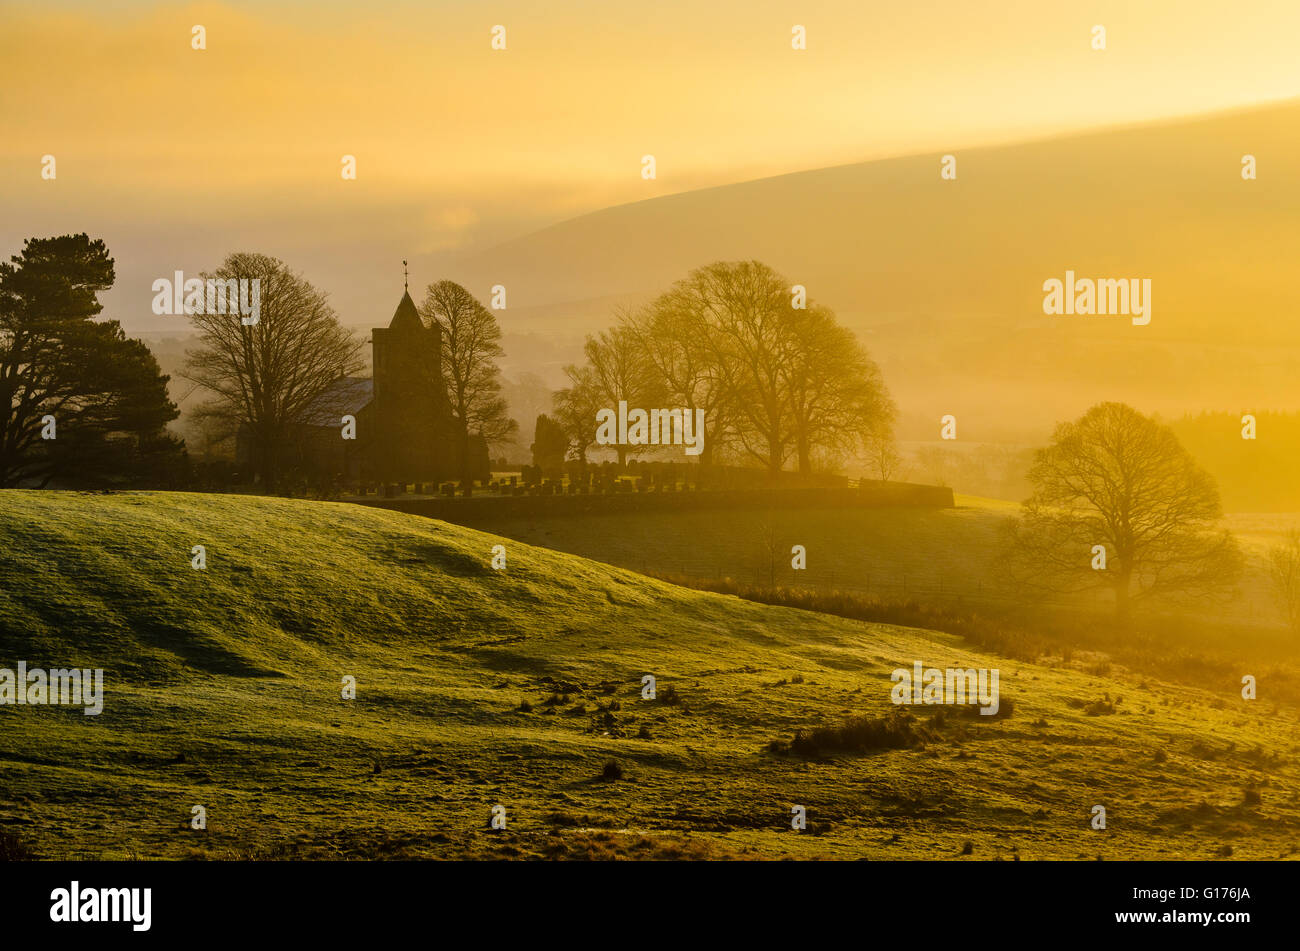 Christ Church, known as The Shepherds' Church, at Over Wyresdale Lancashire England - Stock Image